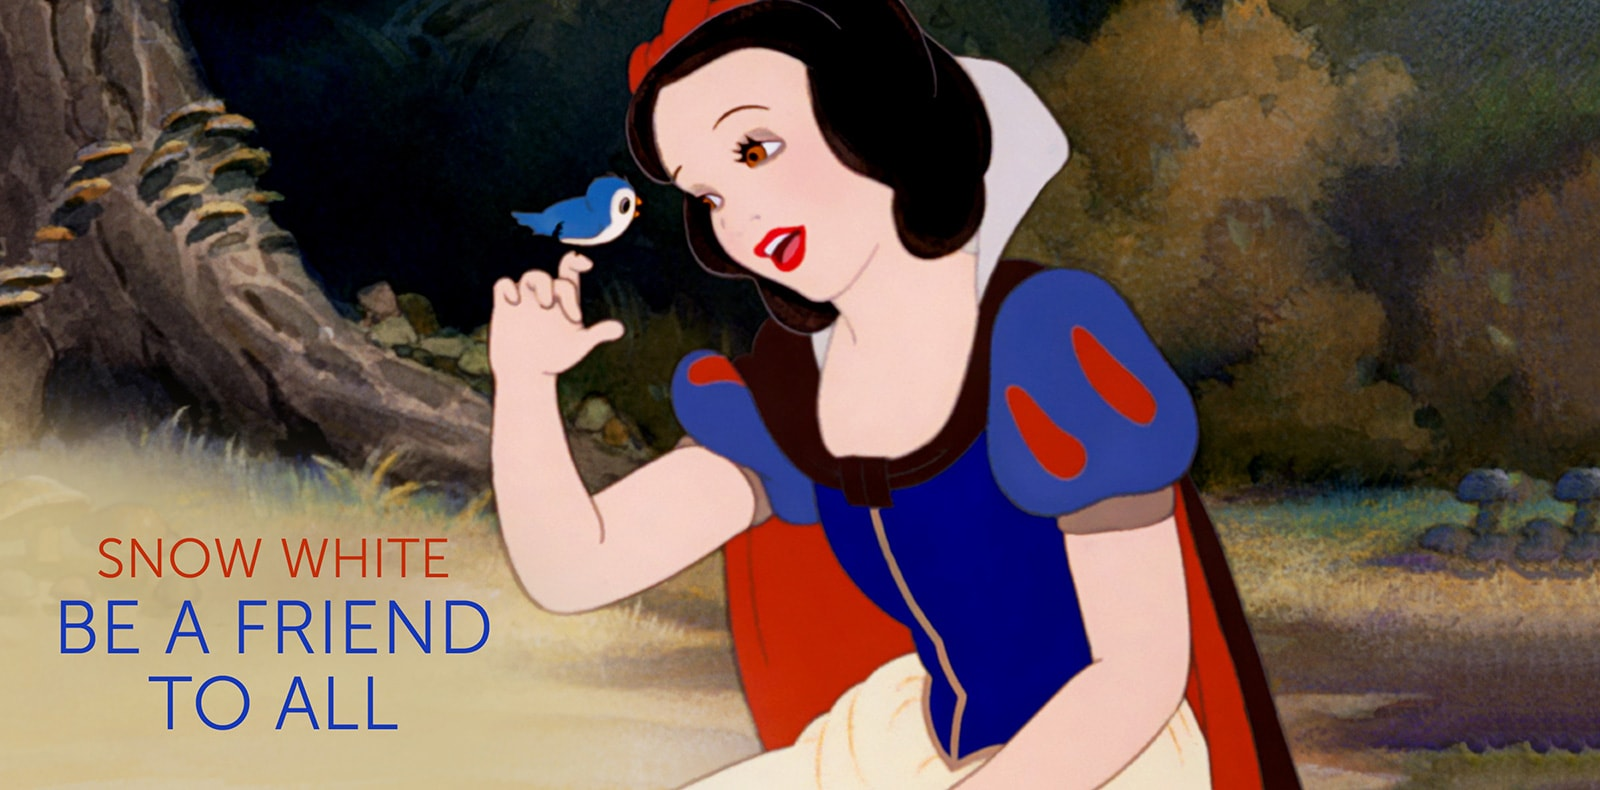 From Snow White To Meg Shifting Perceptions Of Gender In Disney Films